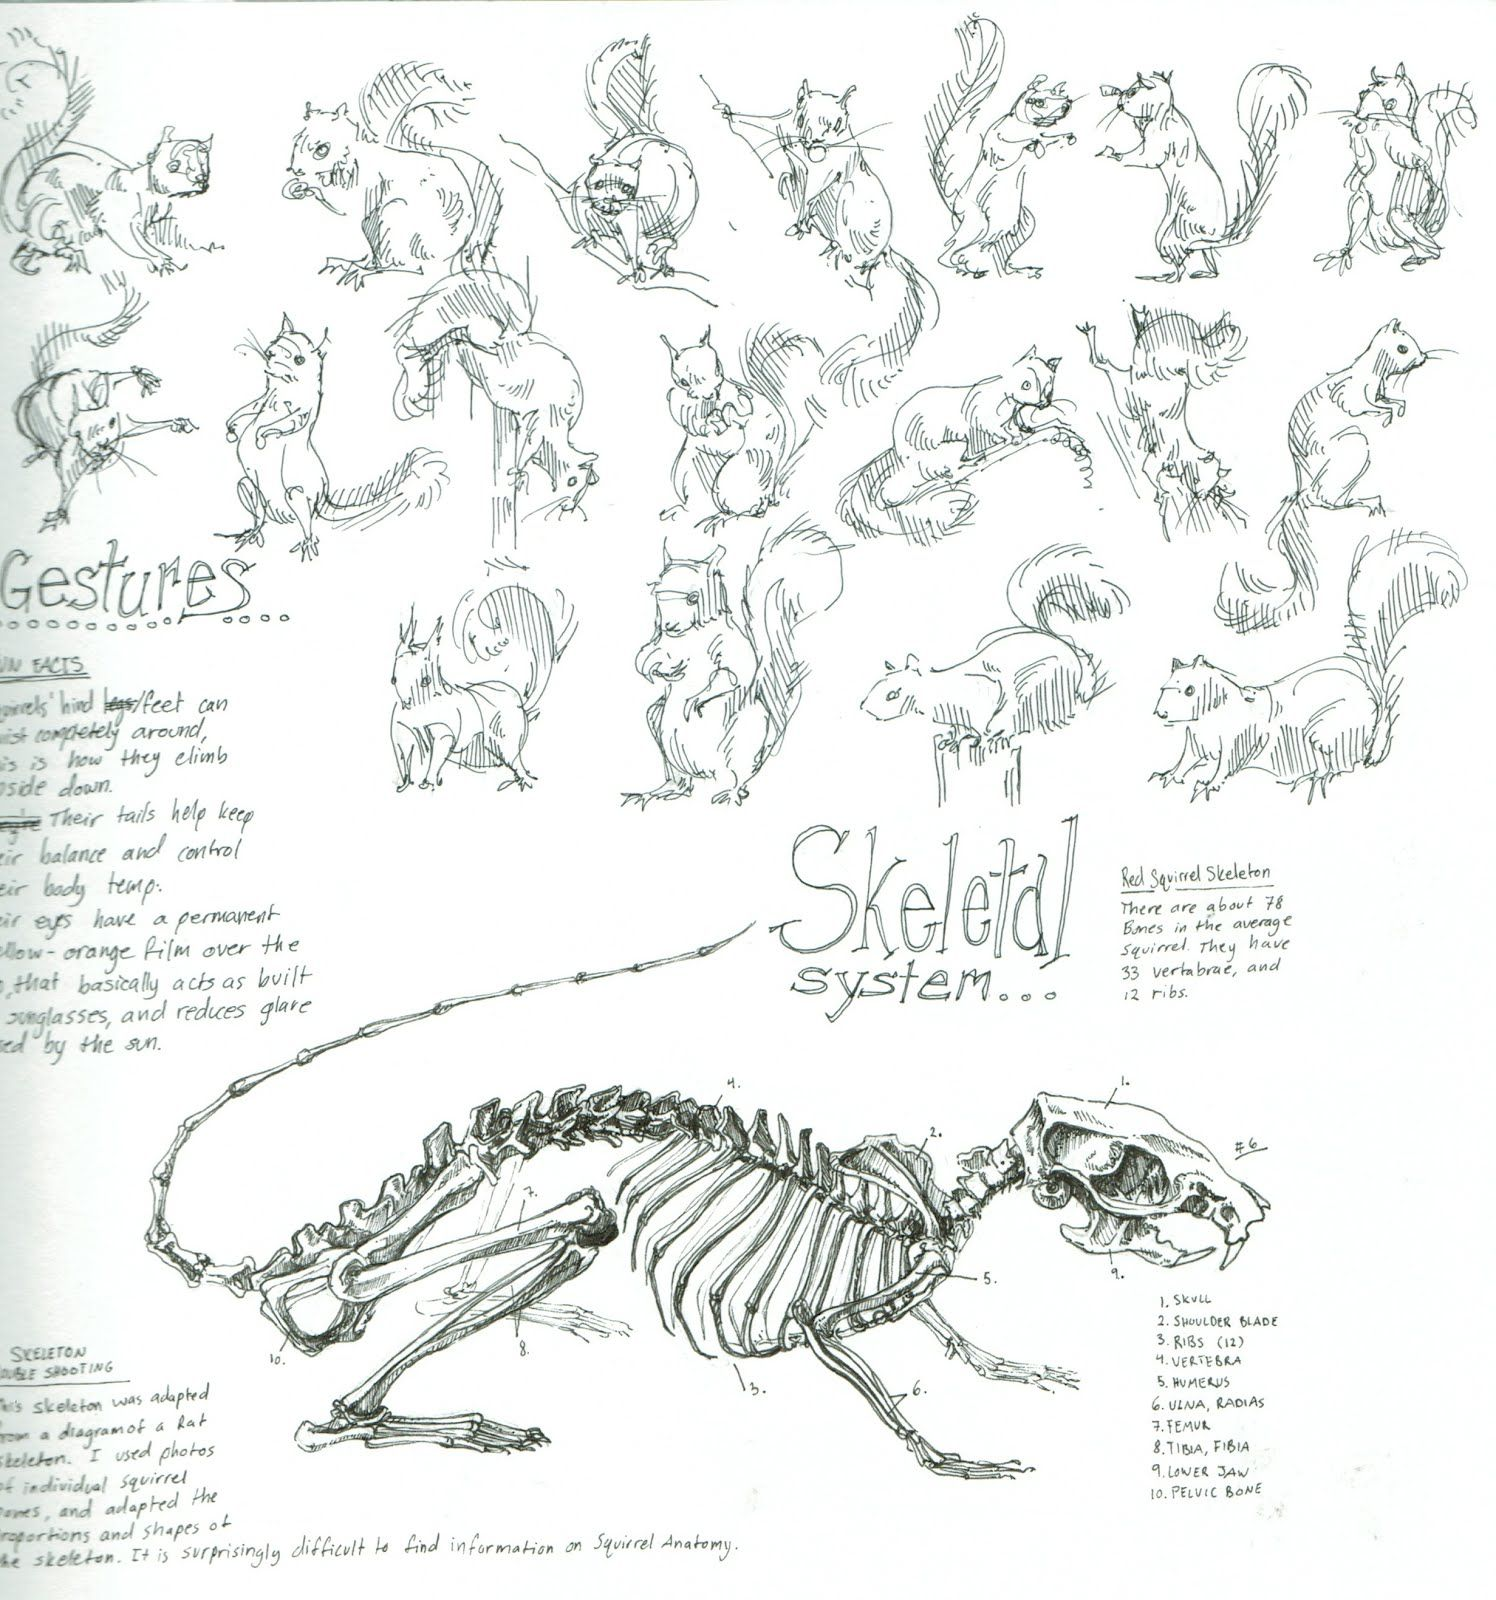 squirrel skeleton diggin animals burrows tunnels caves rh pinterest com